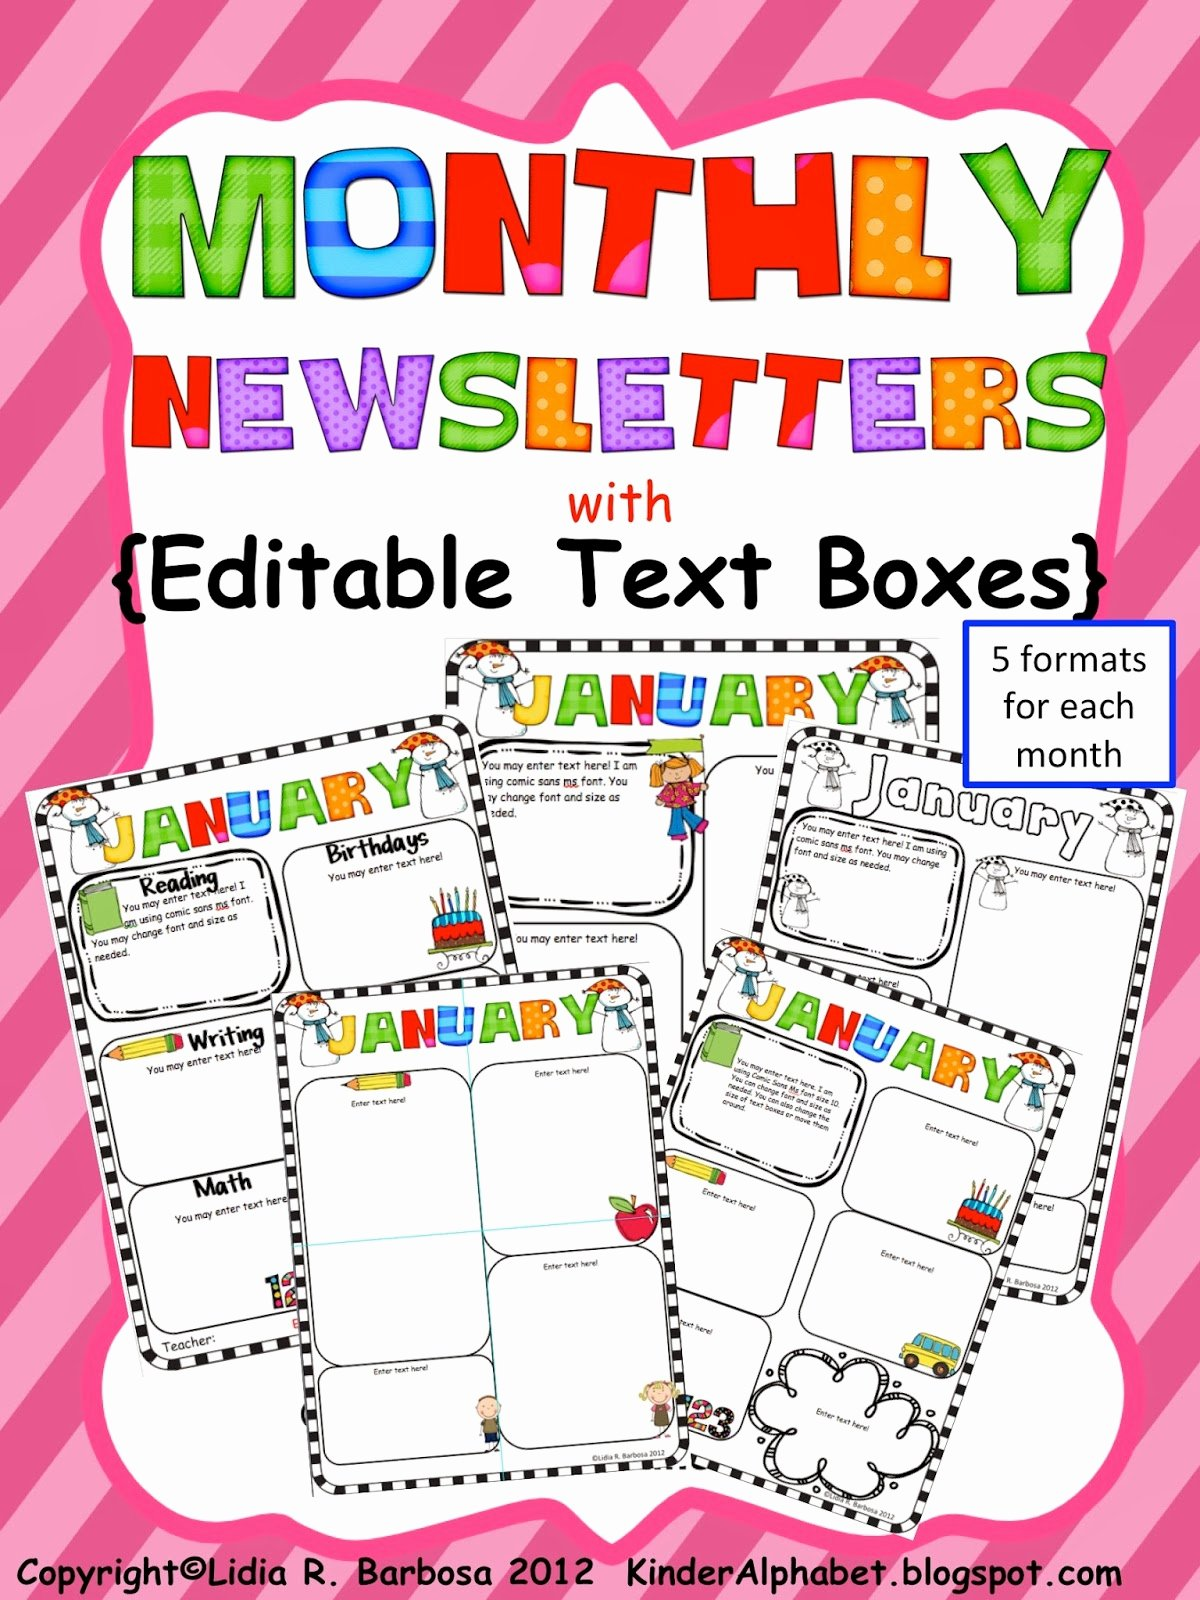 Free Editable Newsletter Templates Fresh Kinder Alphabet — Teacher Resources In English and Spanish